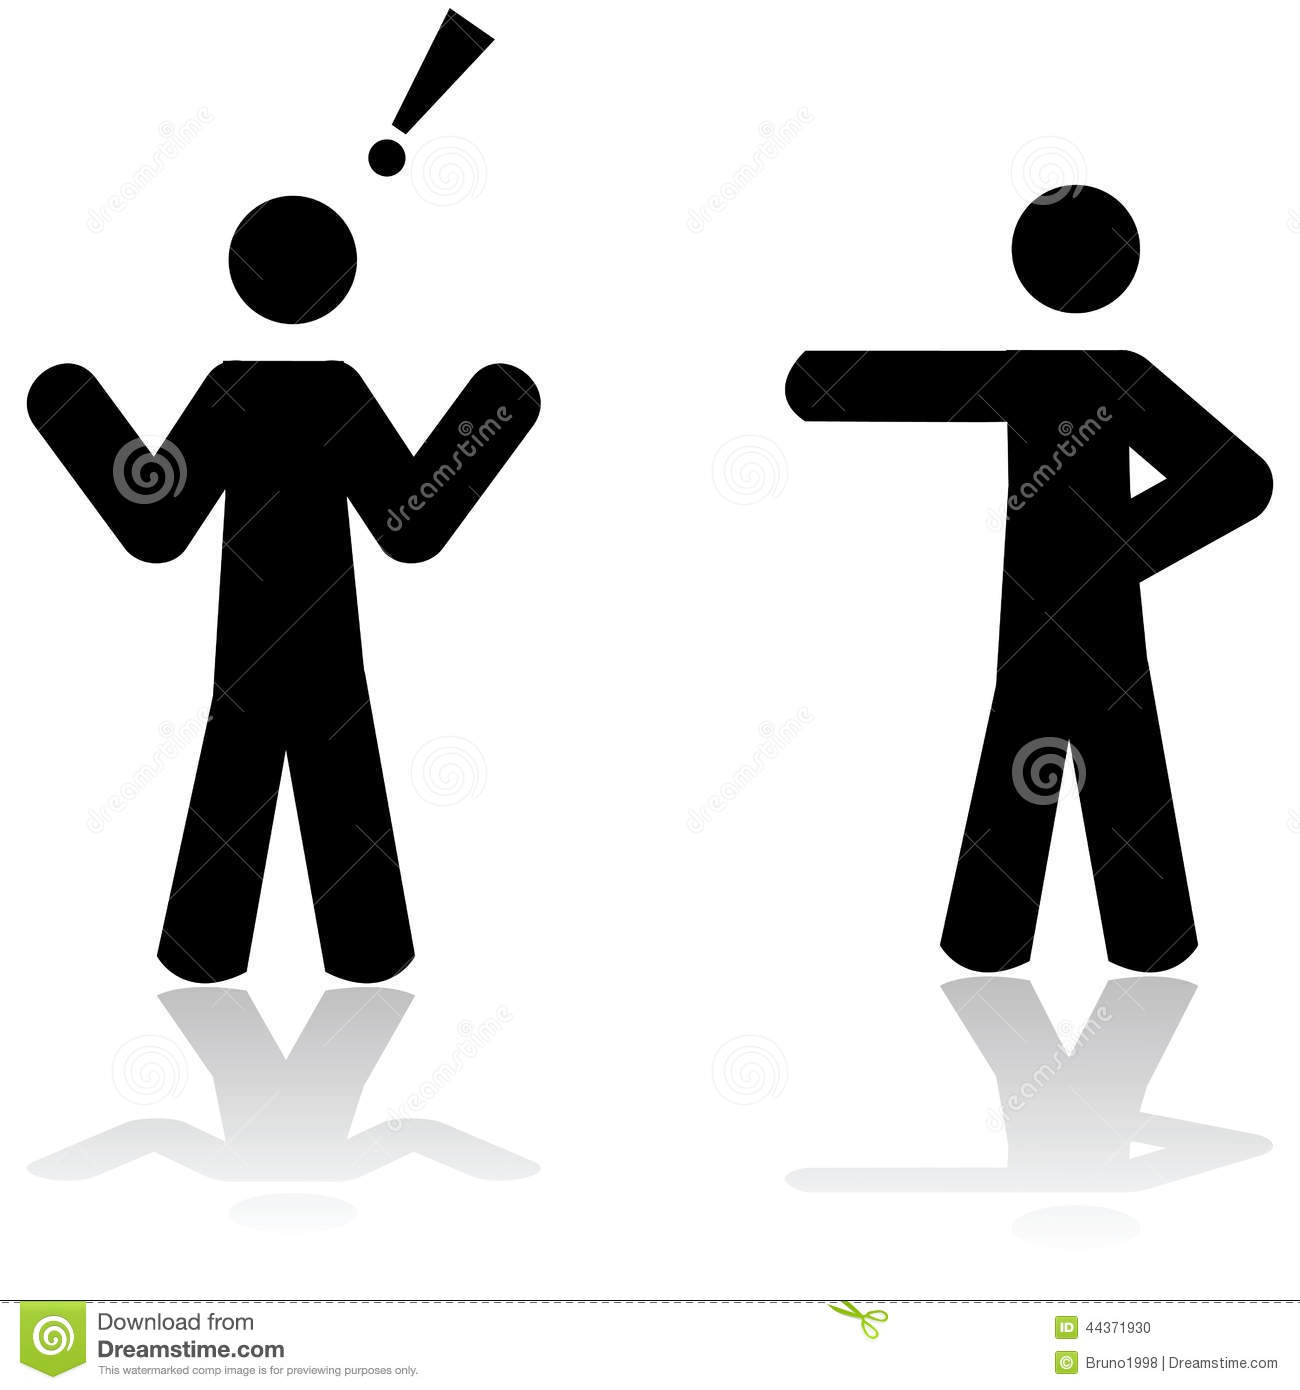 Illustration showing a man pointing at another person, who reacts in ...